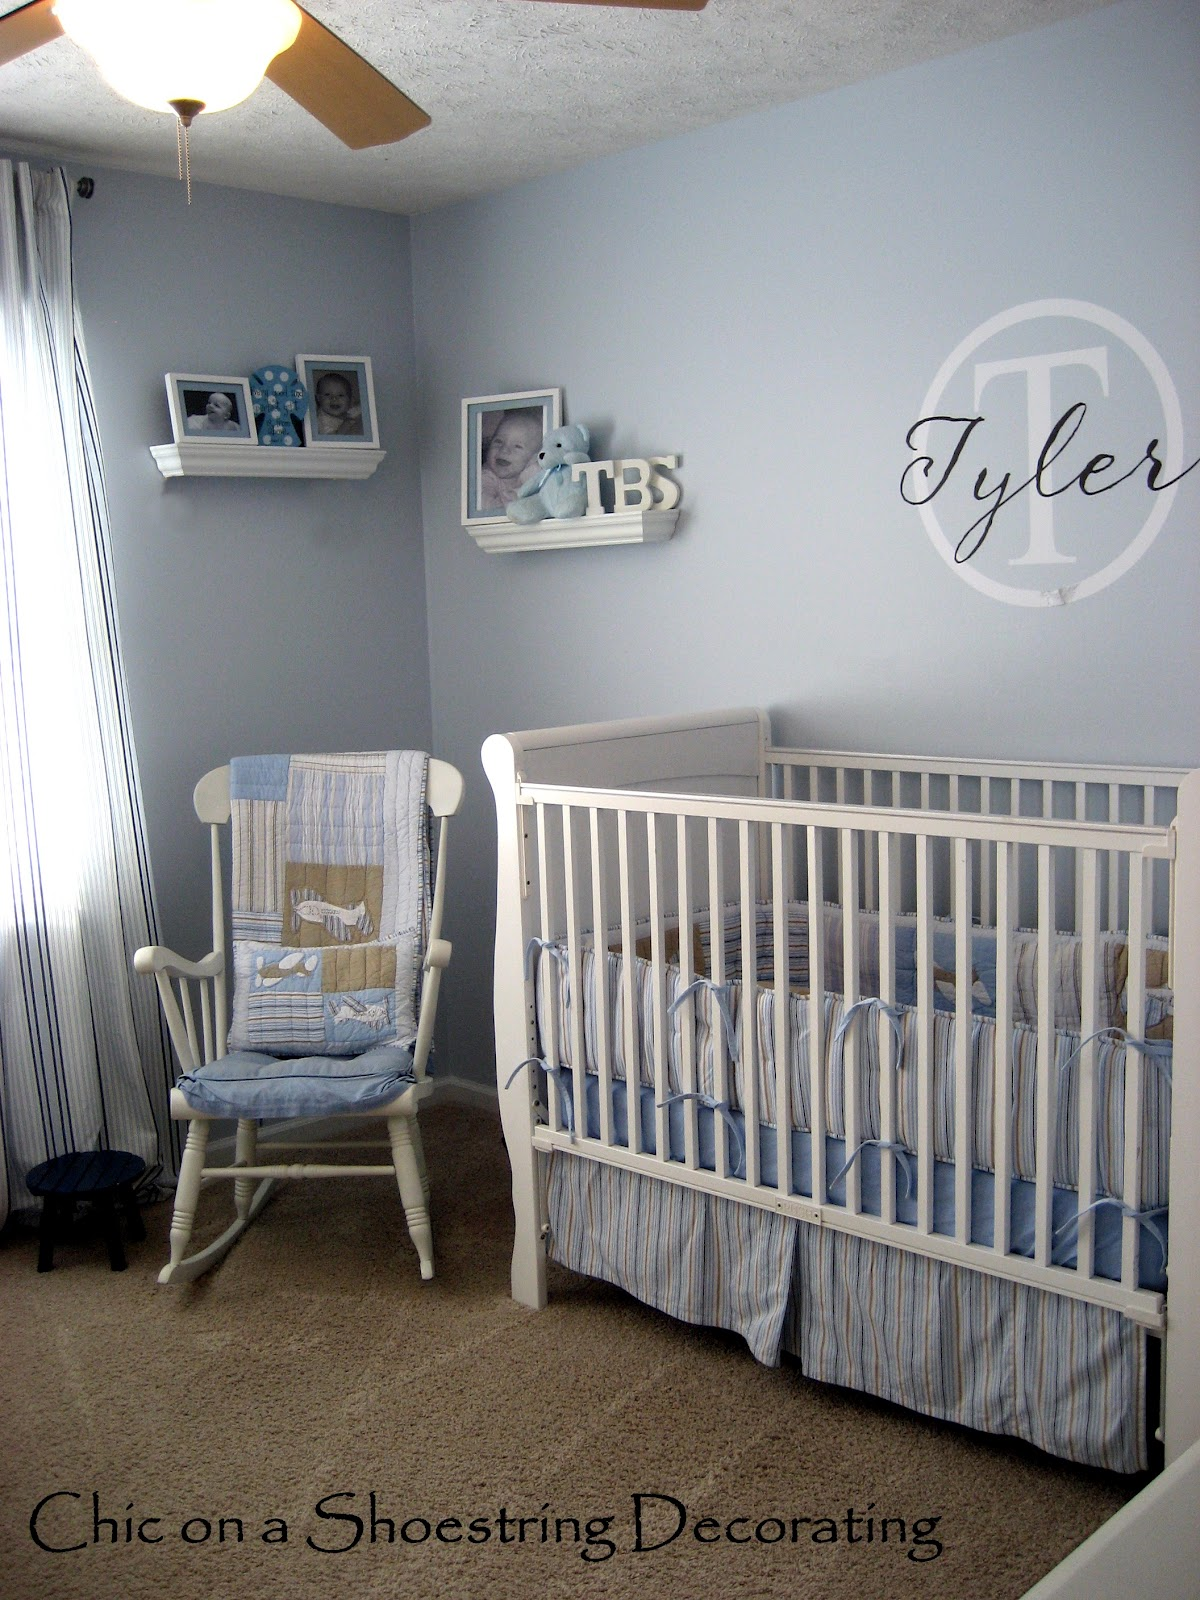 Baby Boy Room Design Pictures: Chic On A Shoestring Decorating: My Boy's Nursery Tour